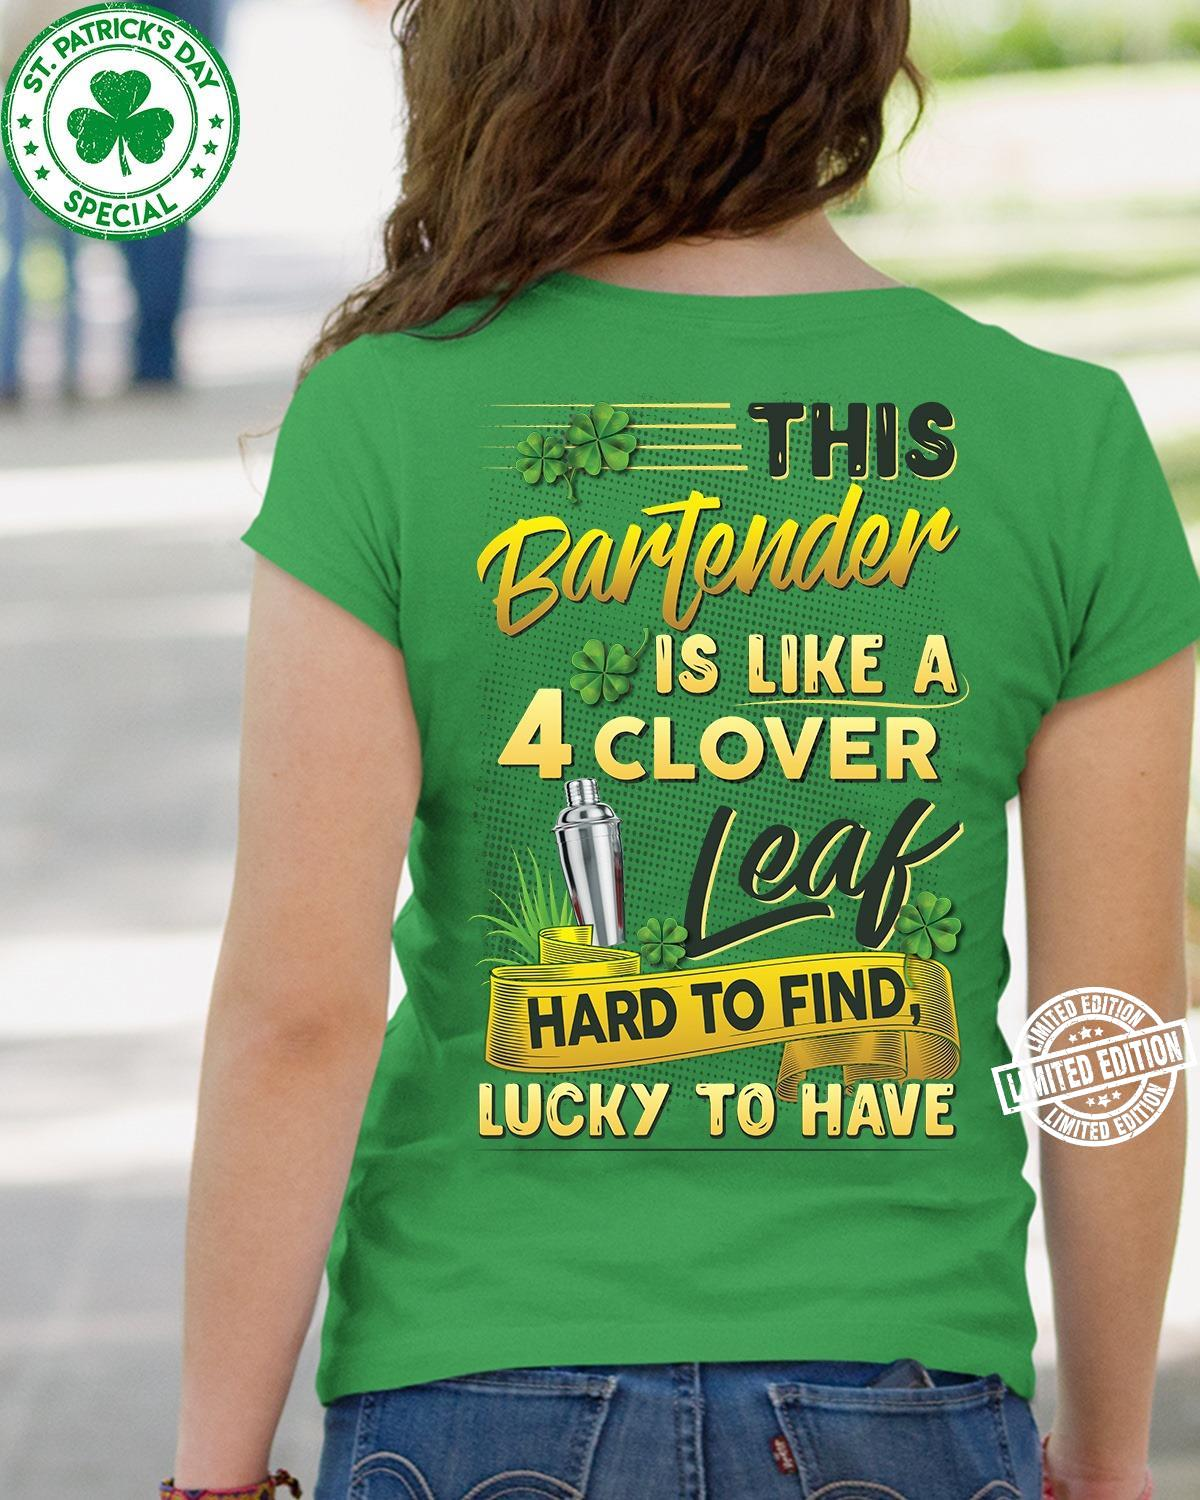 This bartender is like a 4 clover leaf hard to find lucky to have shirt